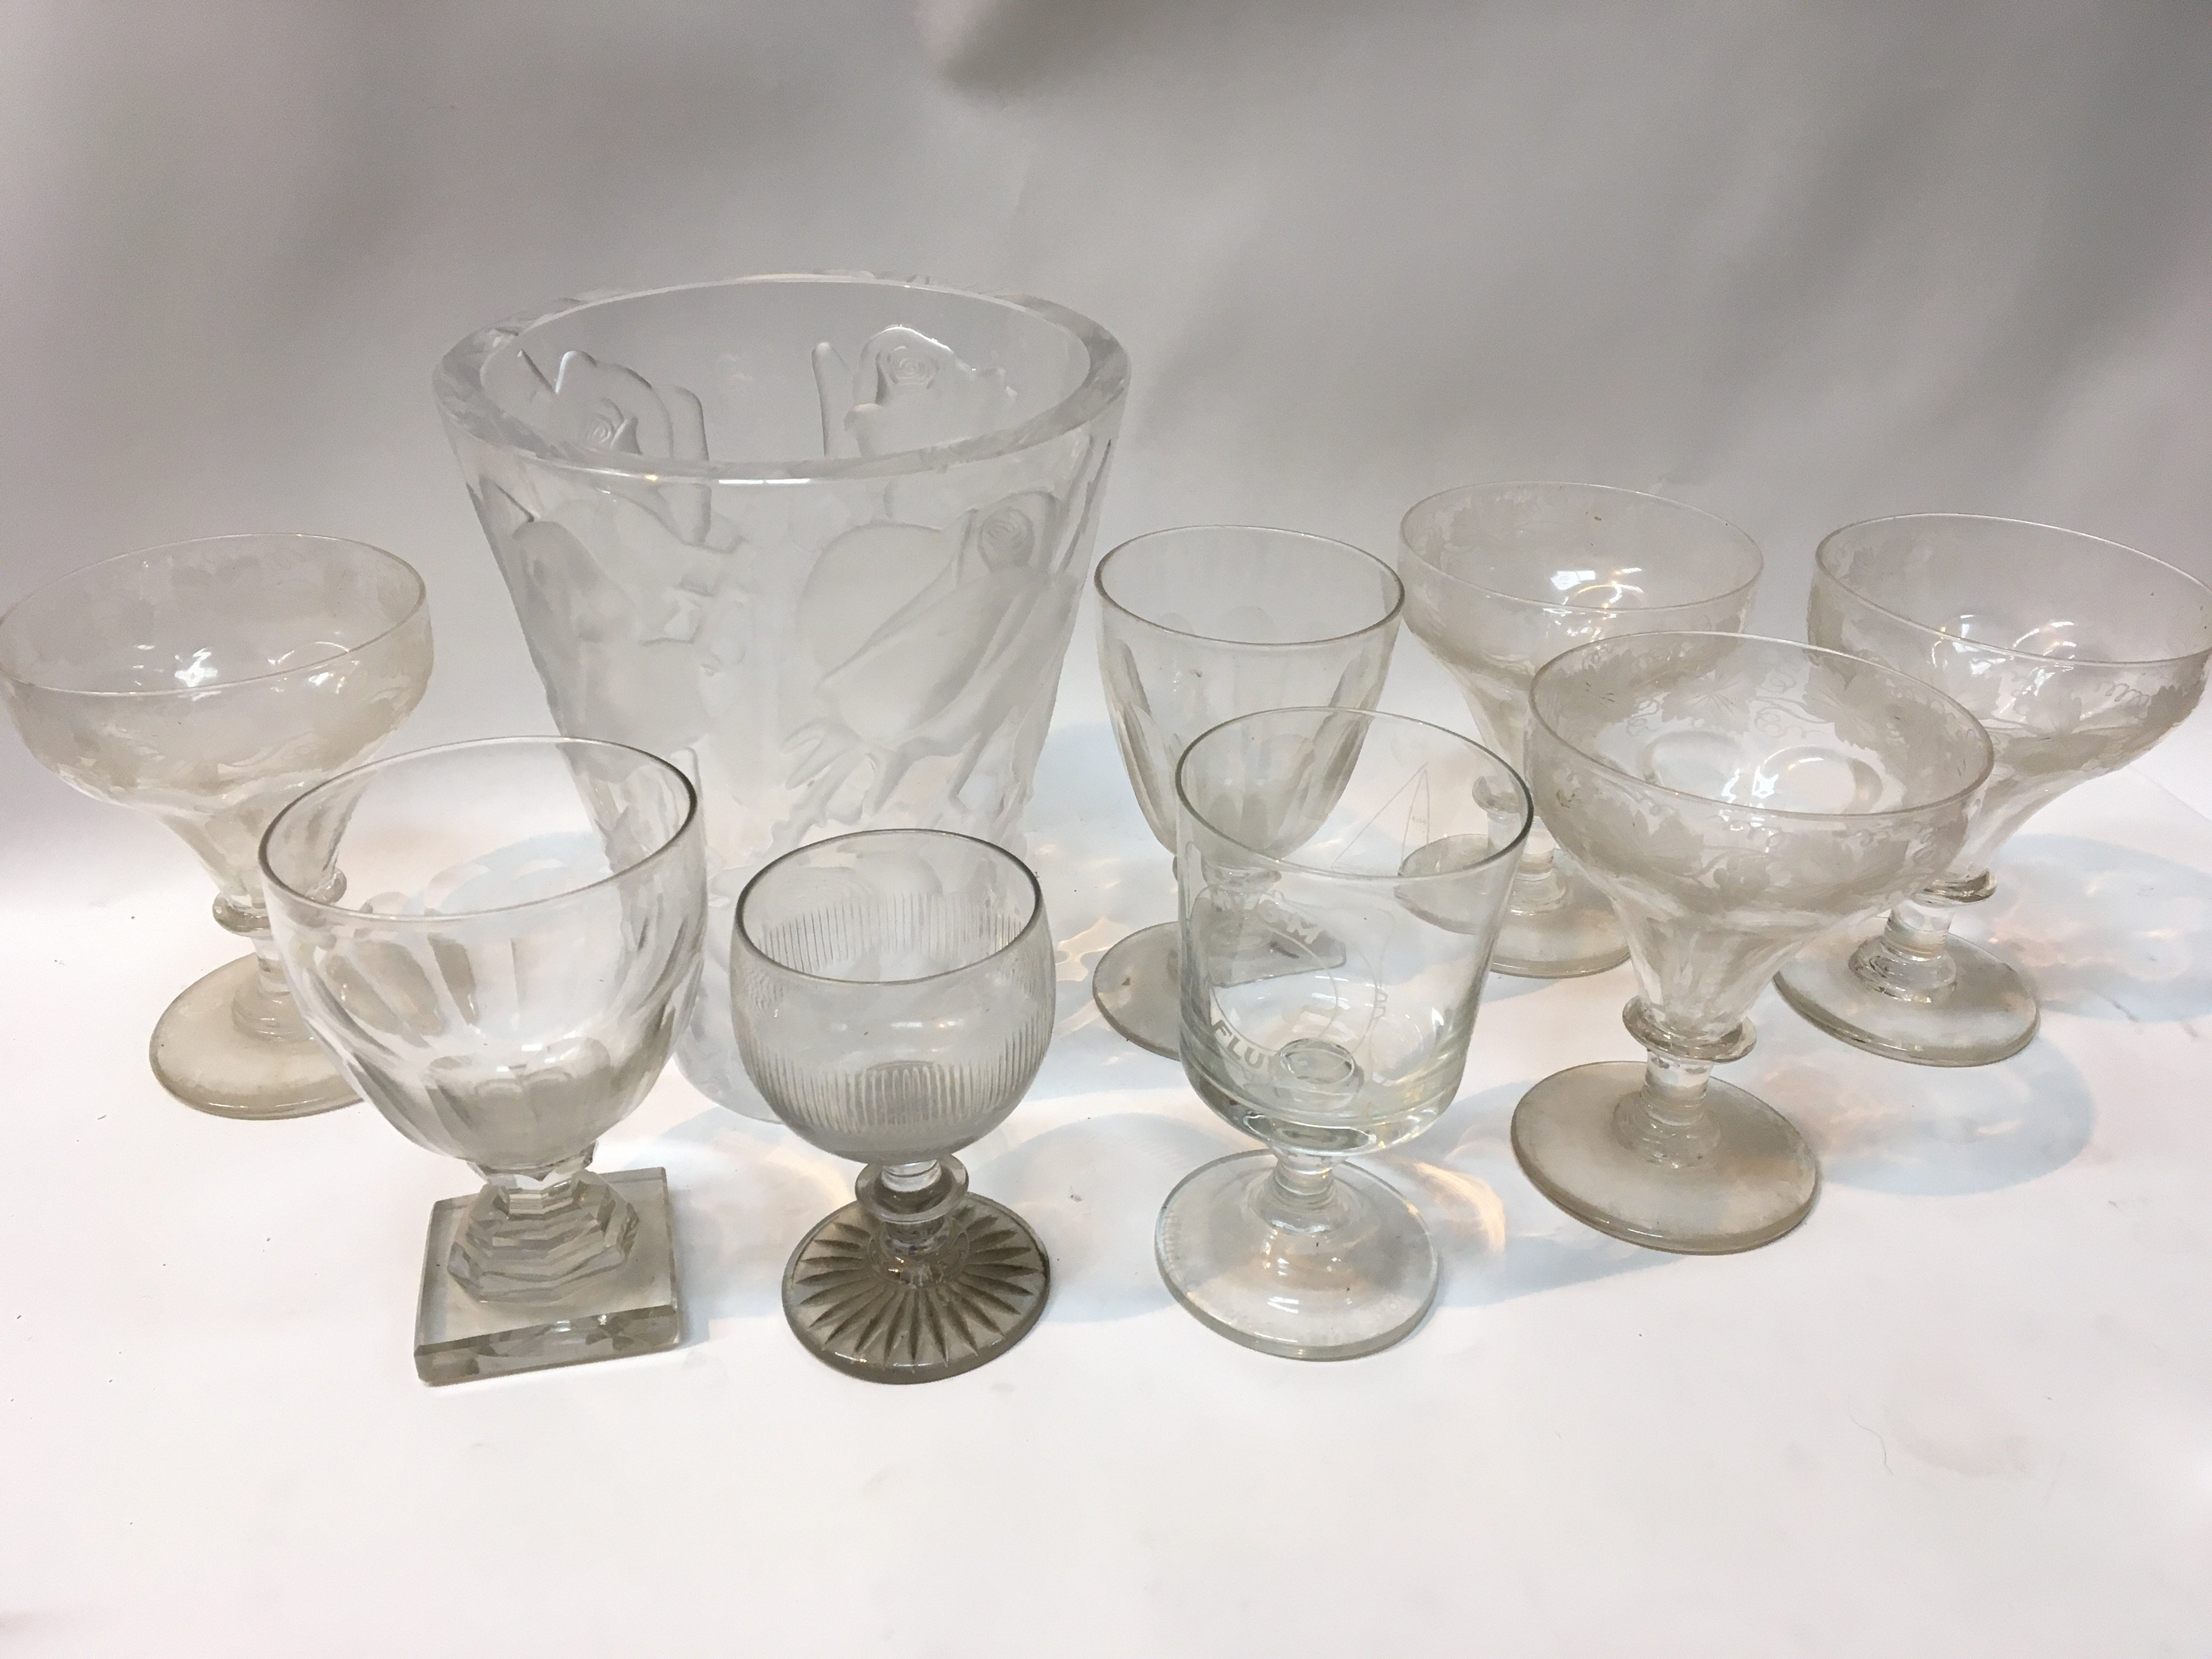 A Lalique style glass vase 19th Century rummers and etched glasses (a lot)